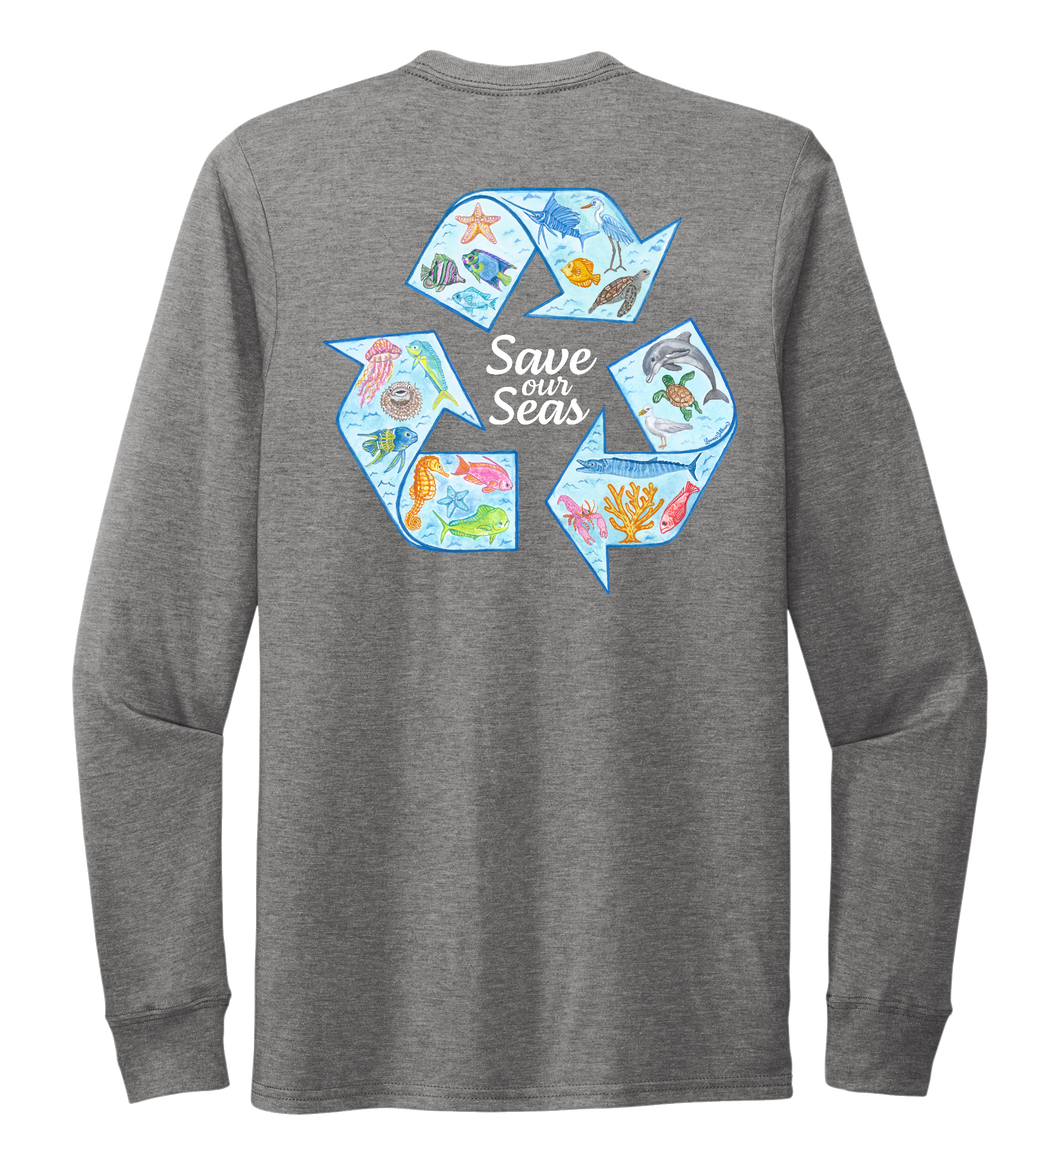 Lauren Gilliam, Recycle, Unisex Crew Neck Long Sleeve T-shirt in Oyster Grey